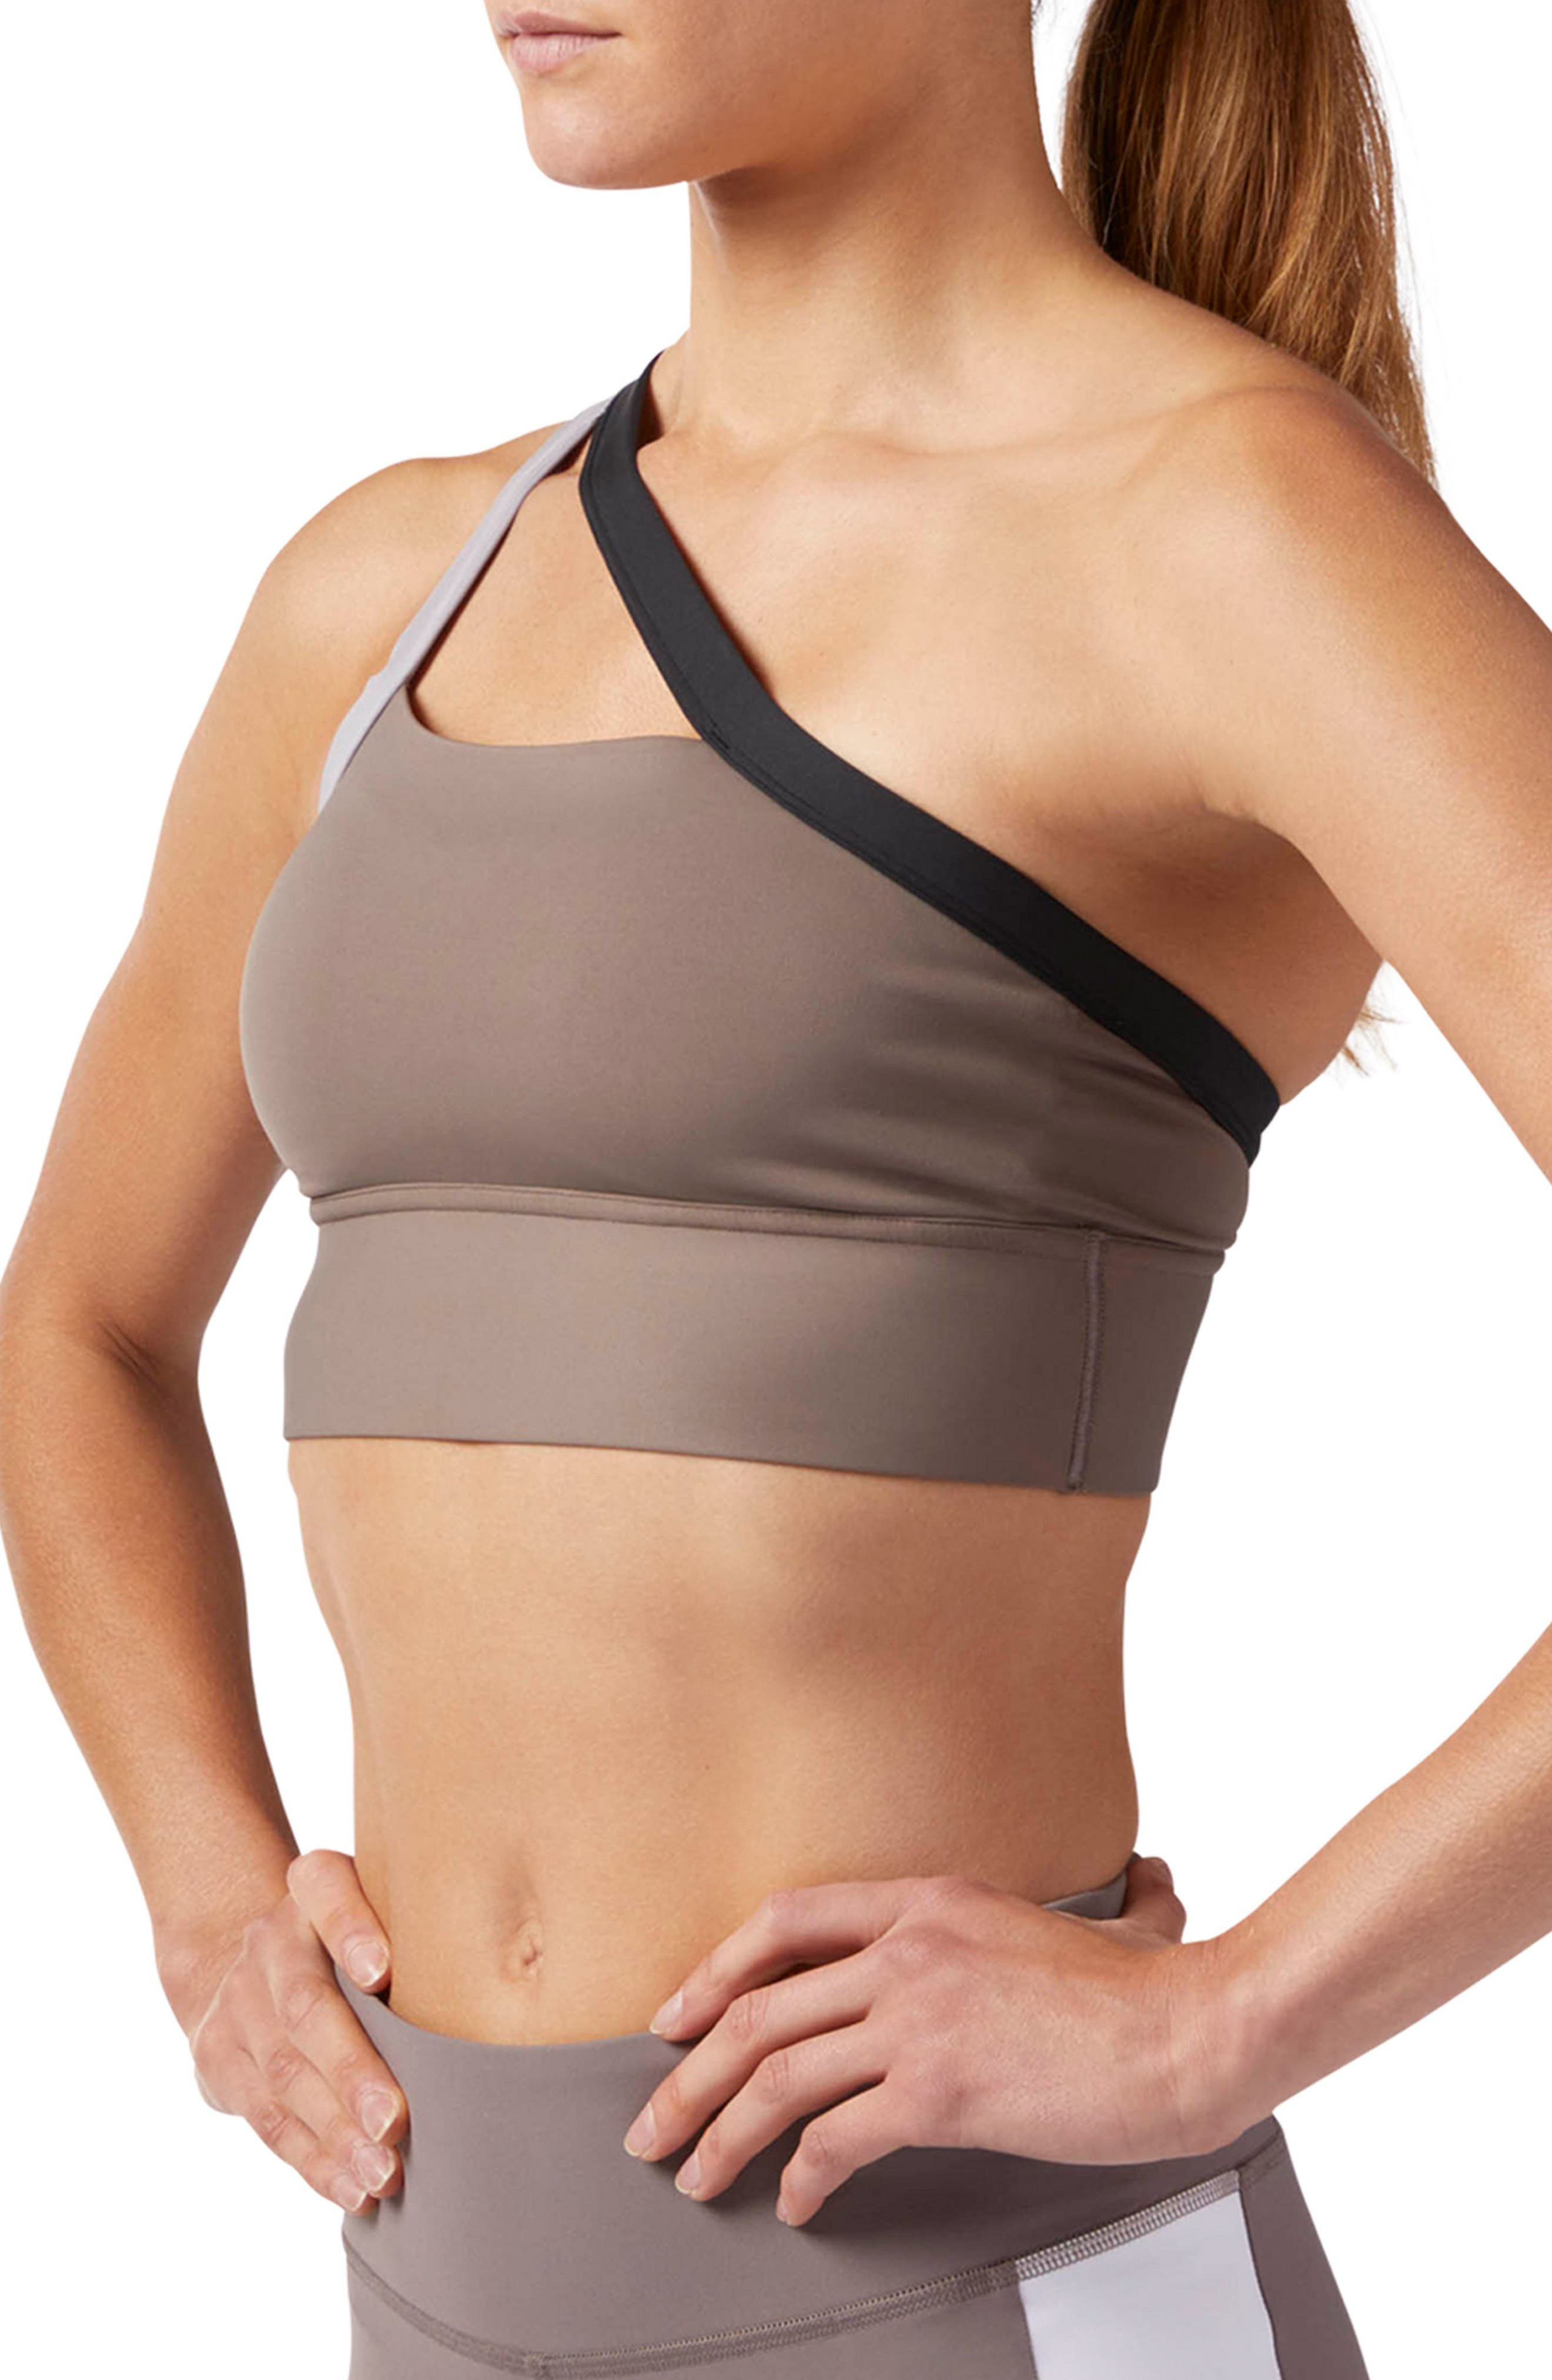 One-Shoulder Sports Bra,                             Alternate thumbnail 3, color,                             SMOKY TAUPE S18-R